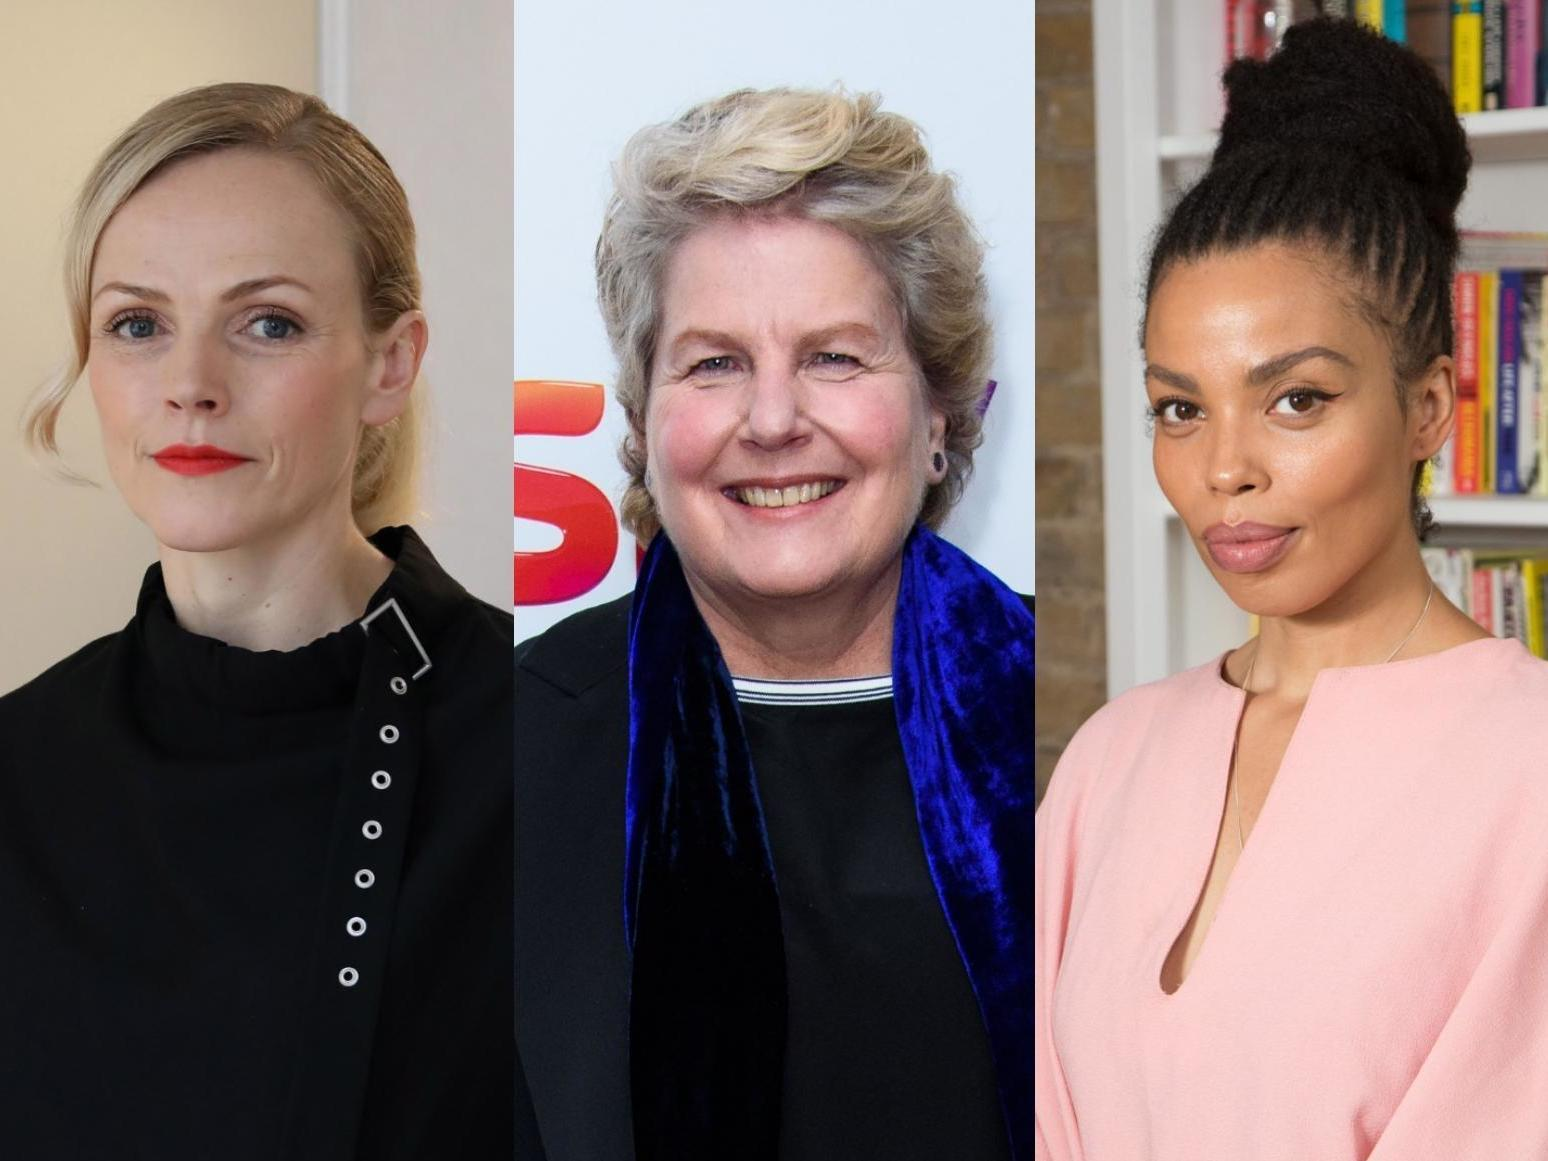 Women of the World announces first virtual feminist festival featuring Sandi Toksvig, Emma Dabiri and Maxine Peake